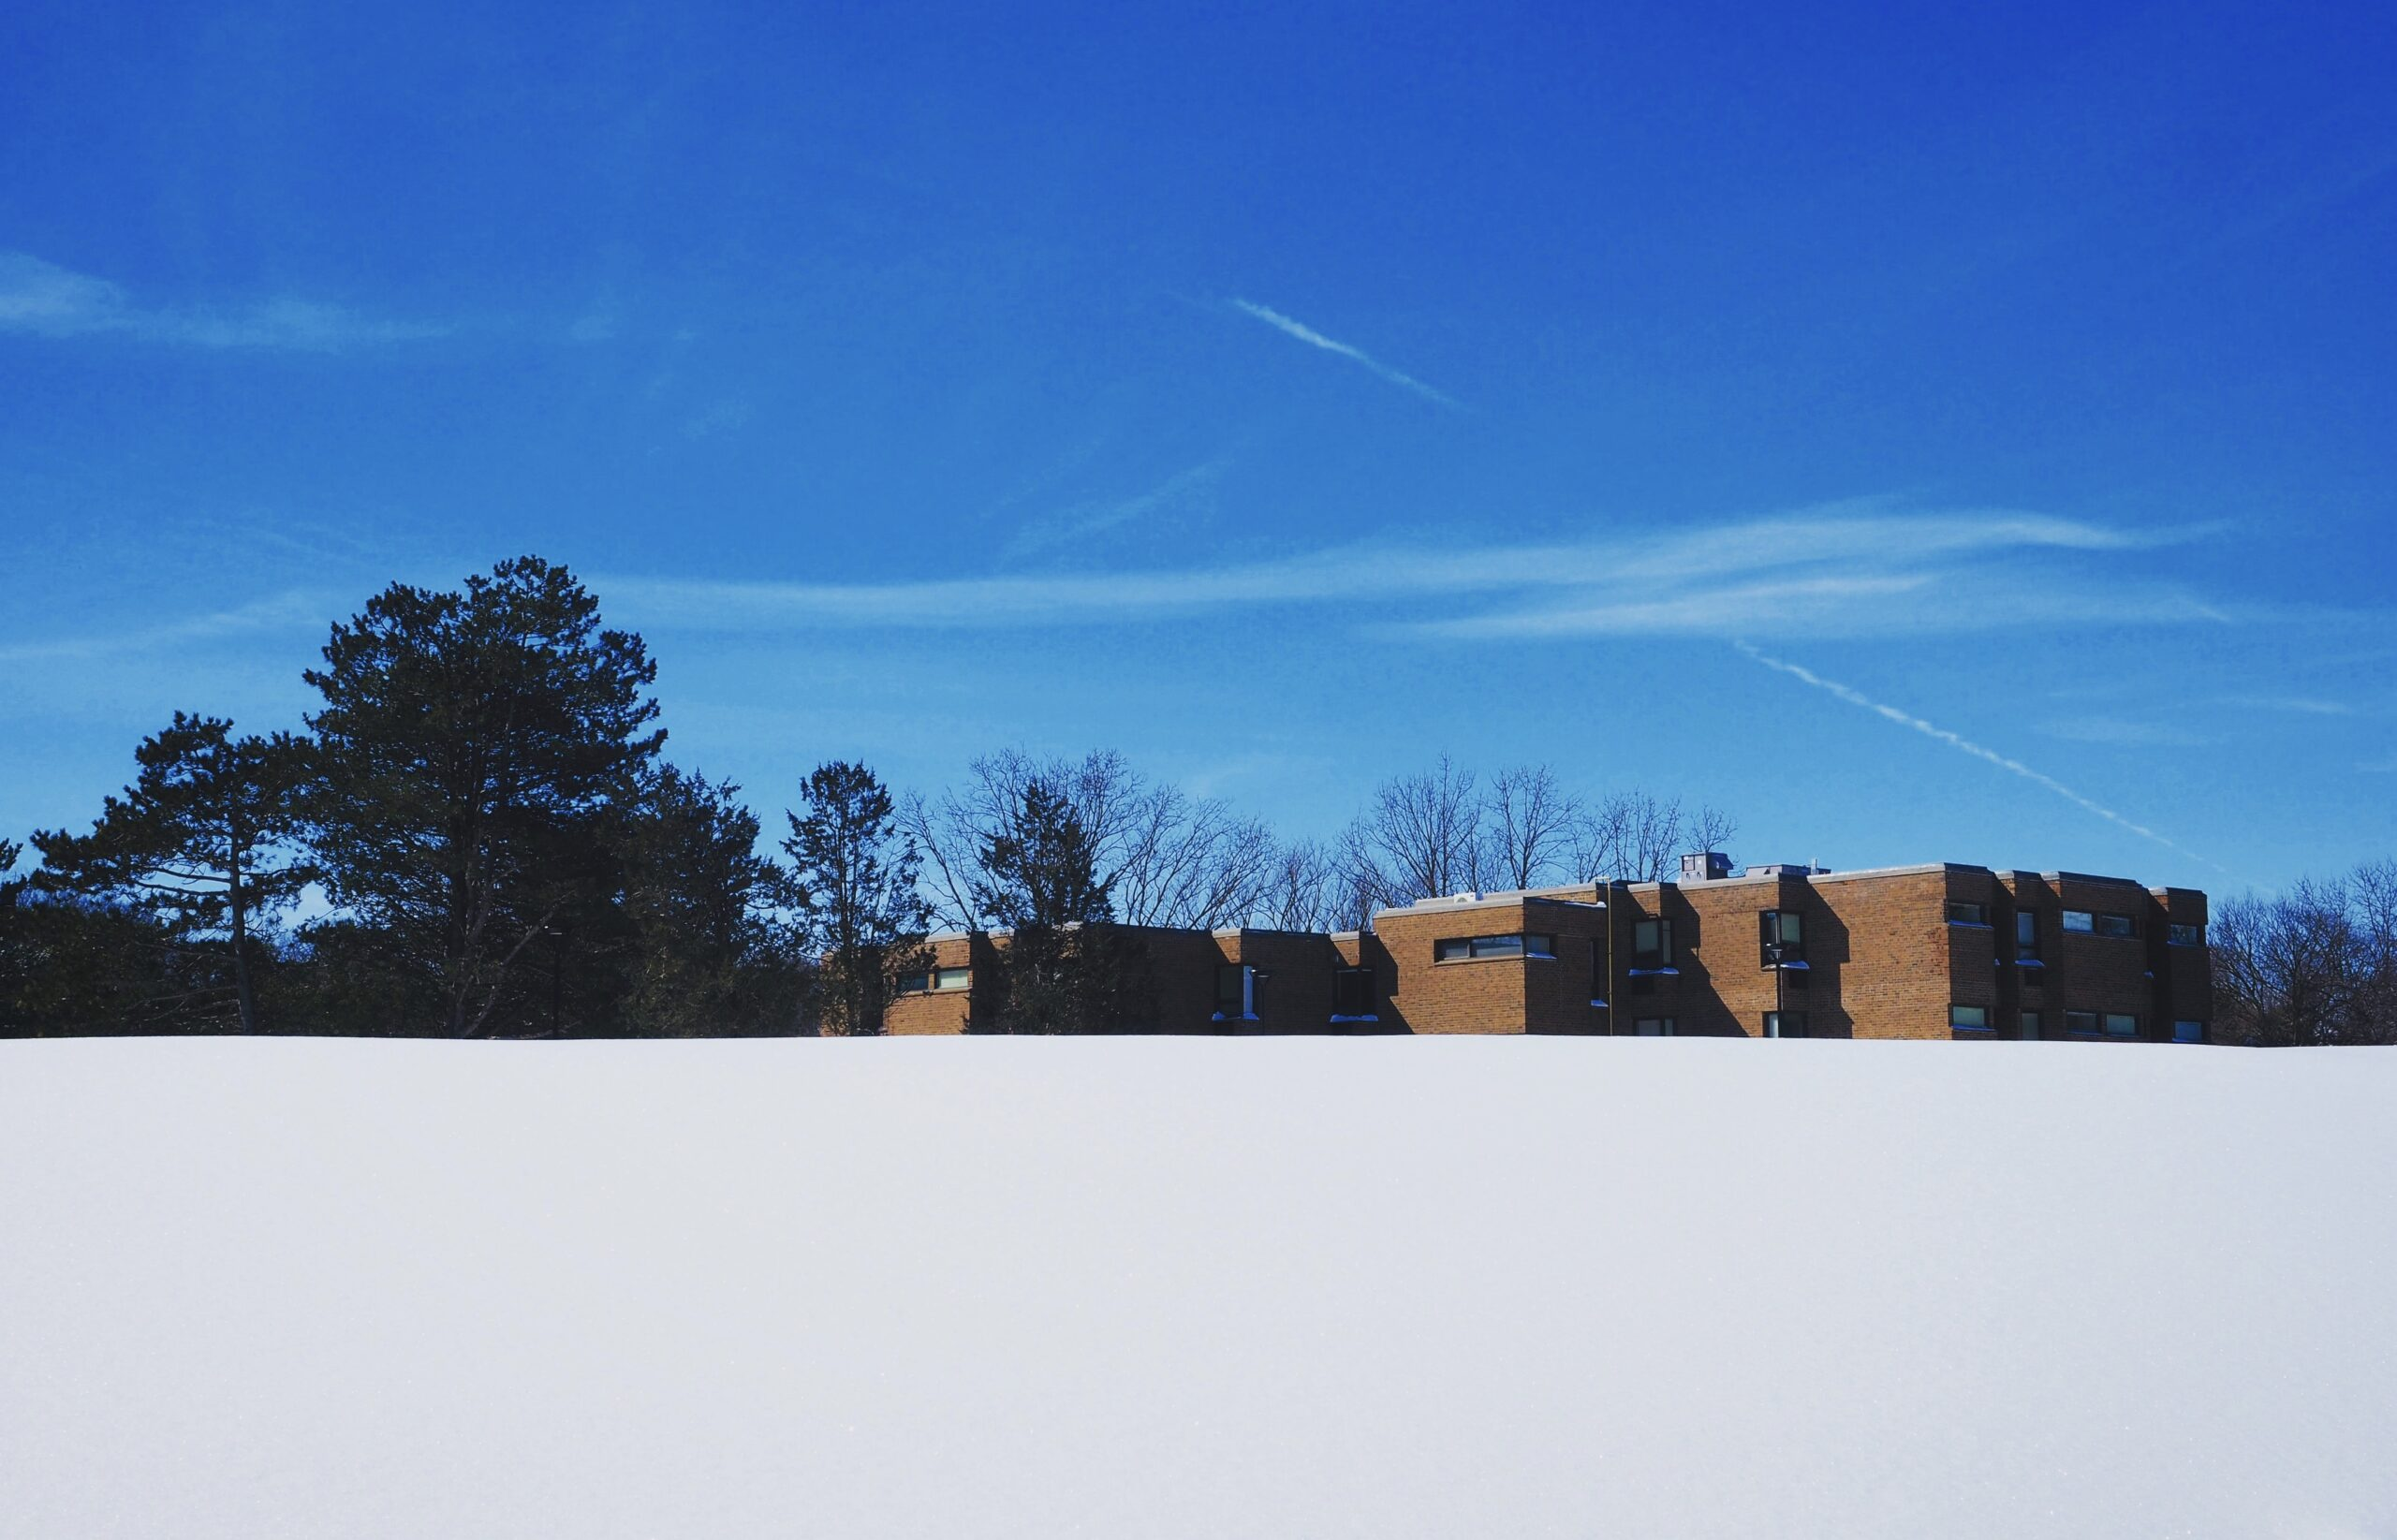 It's another beautiful day at B.C. Matthews hall.